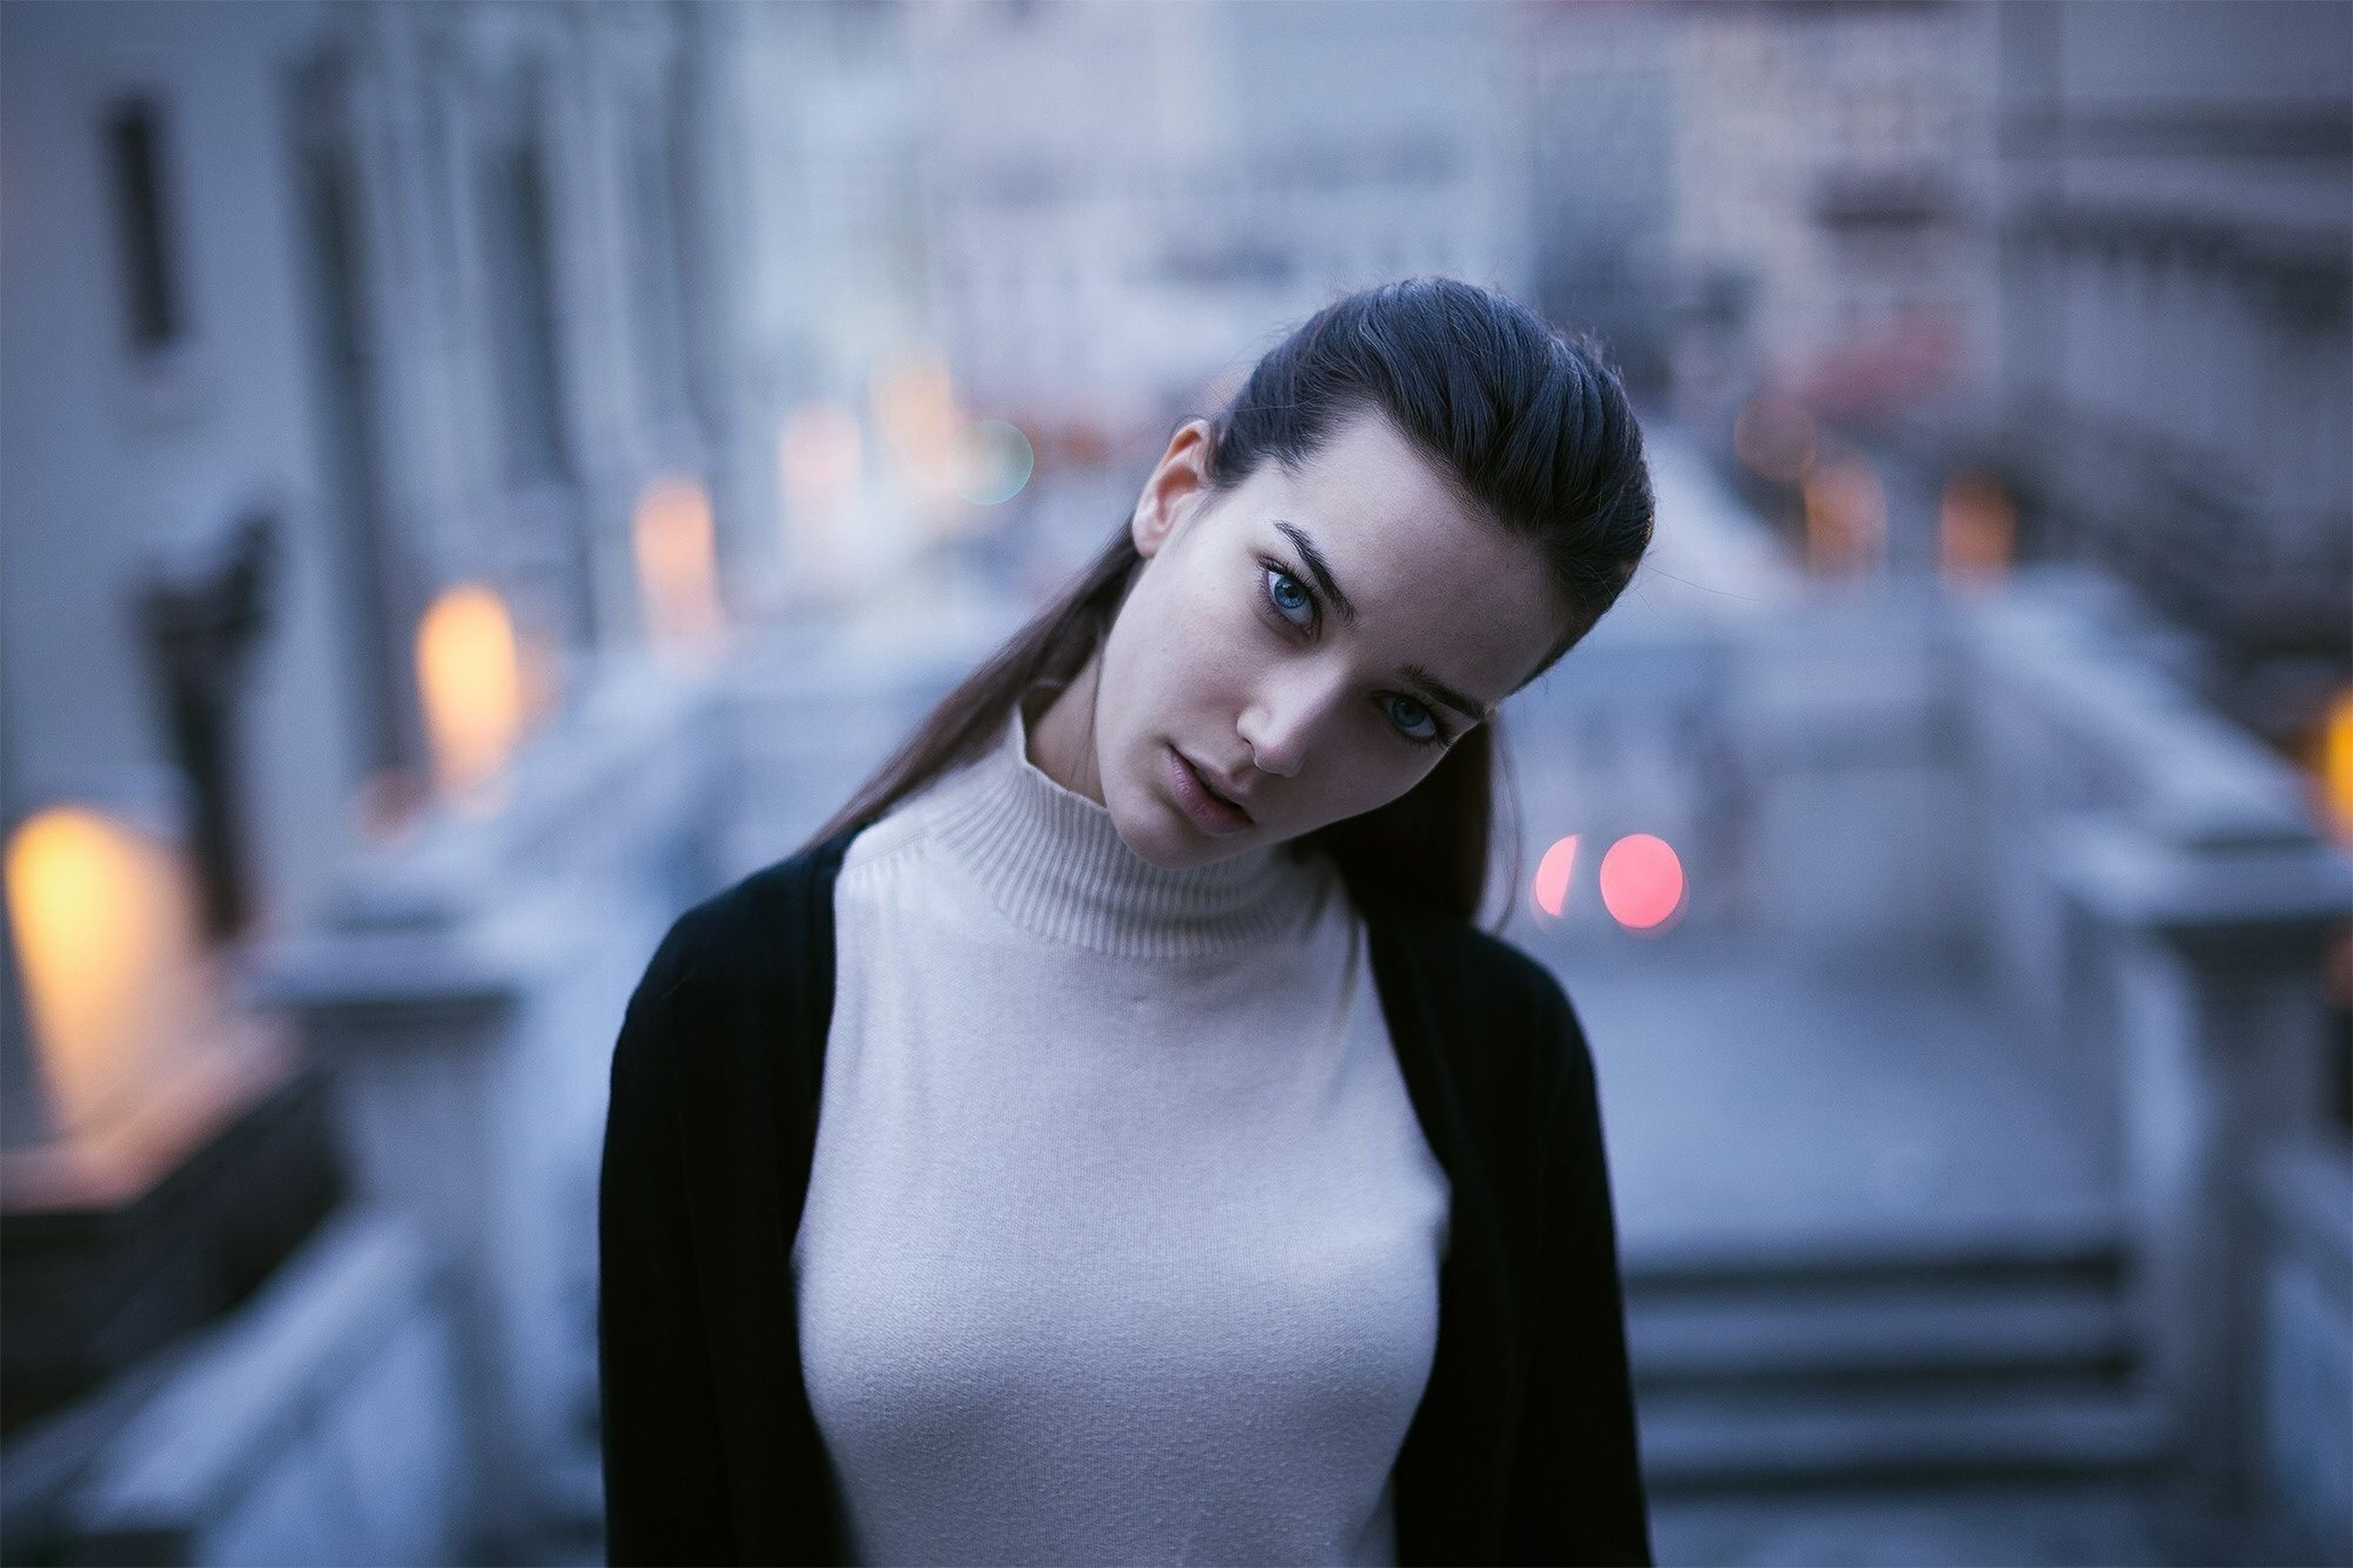 one person, portrait, young adult, adult, focus on foreground, beautiful woman, headshot, women, indoors, architecture, burning, hair, front view, young women, beauty, city, illuminated, waist up, hairstyle, contemplation